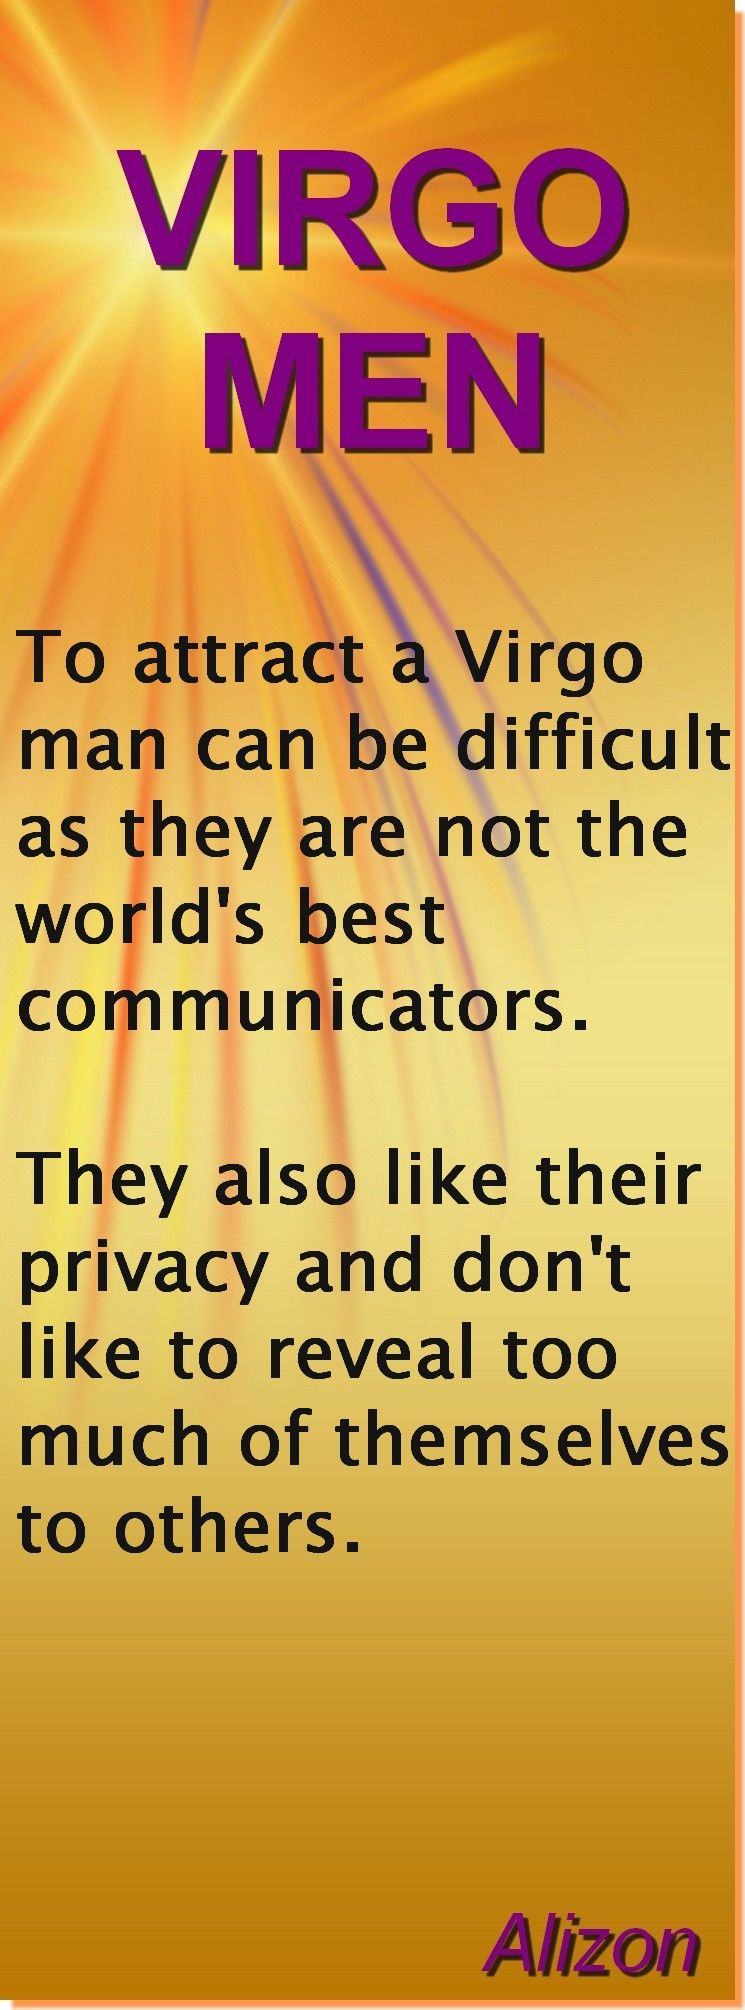 how to attract a virgo man sexually